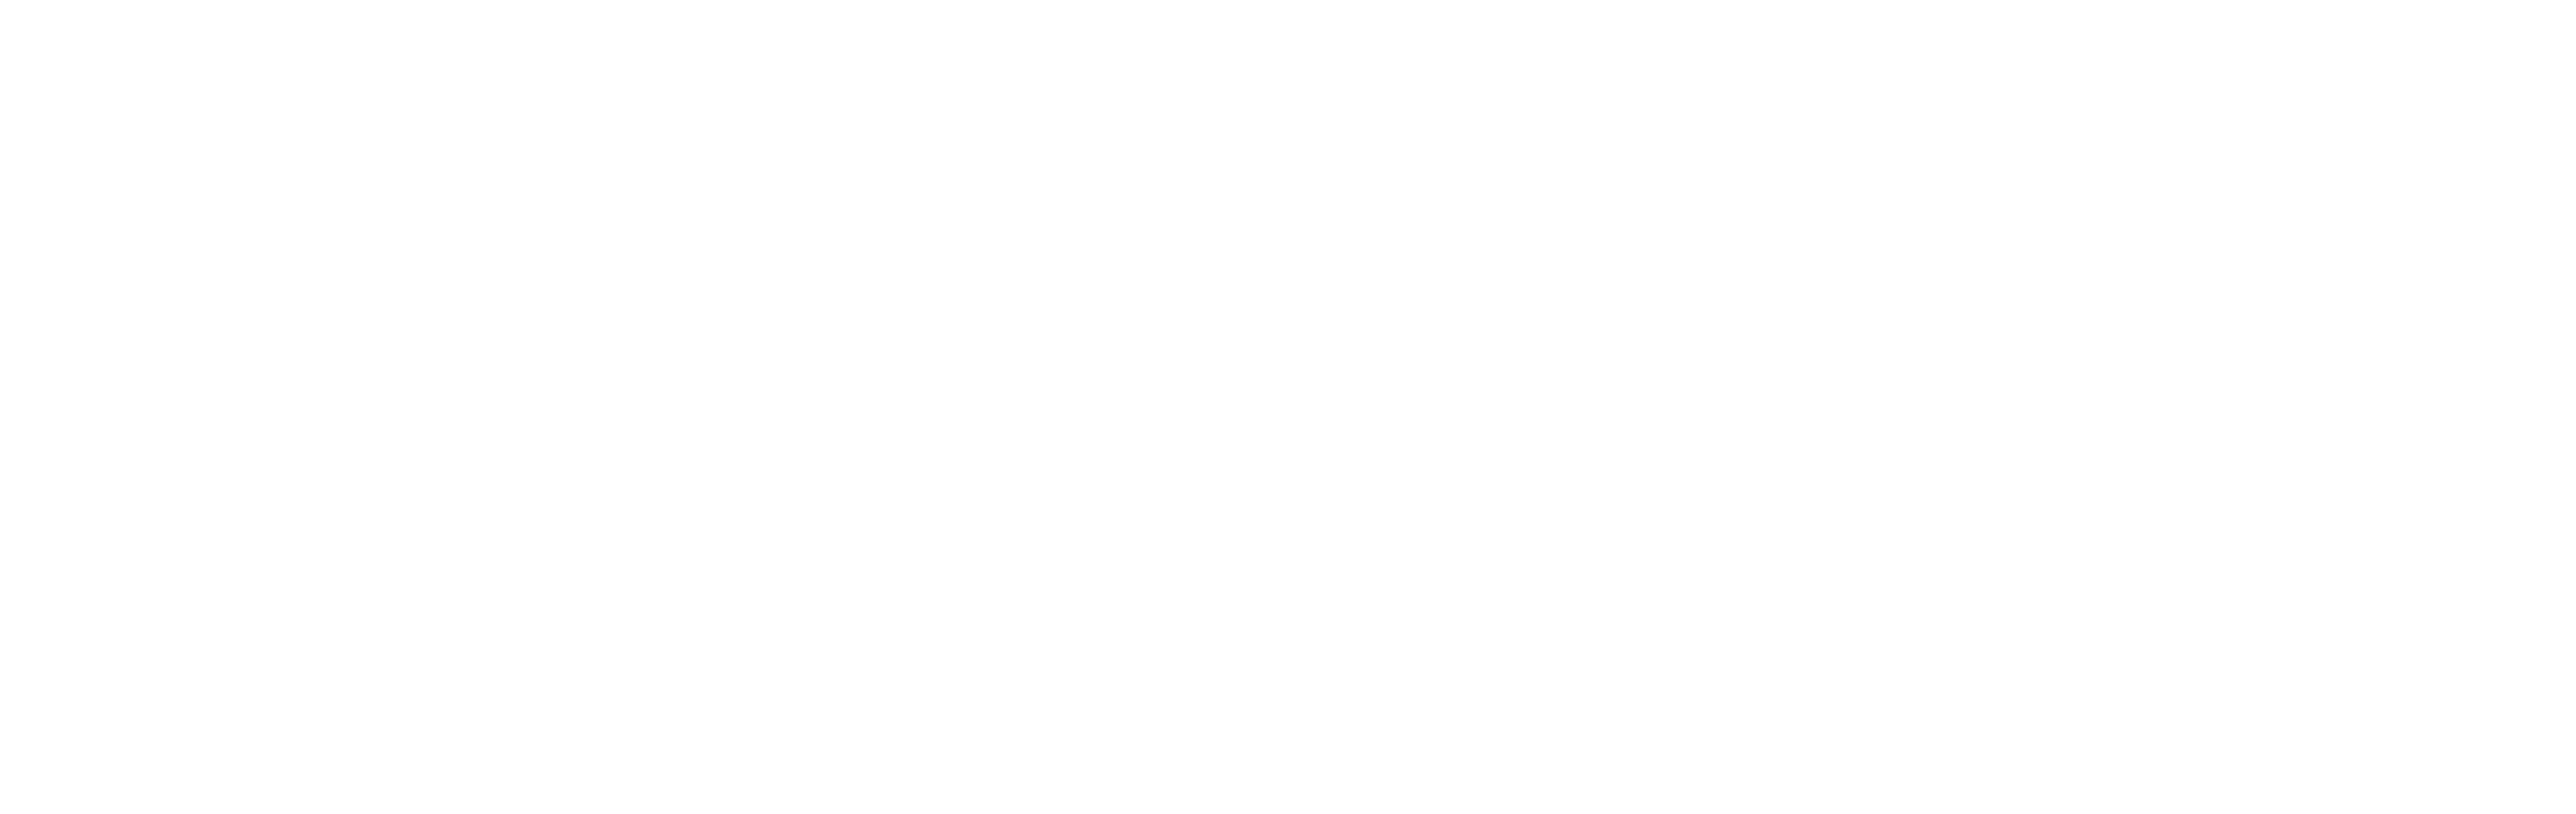 Green Thumb Florist - Flower Delivery in Brimfield, MA